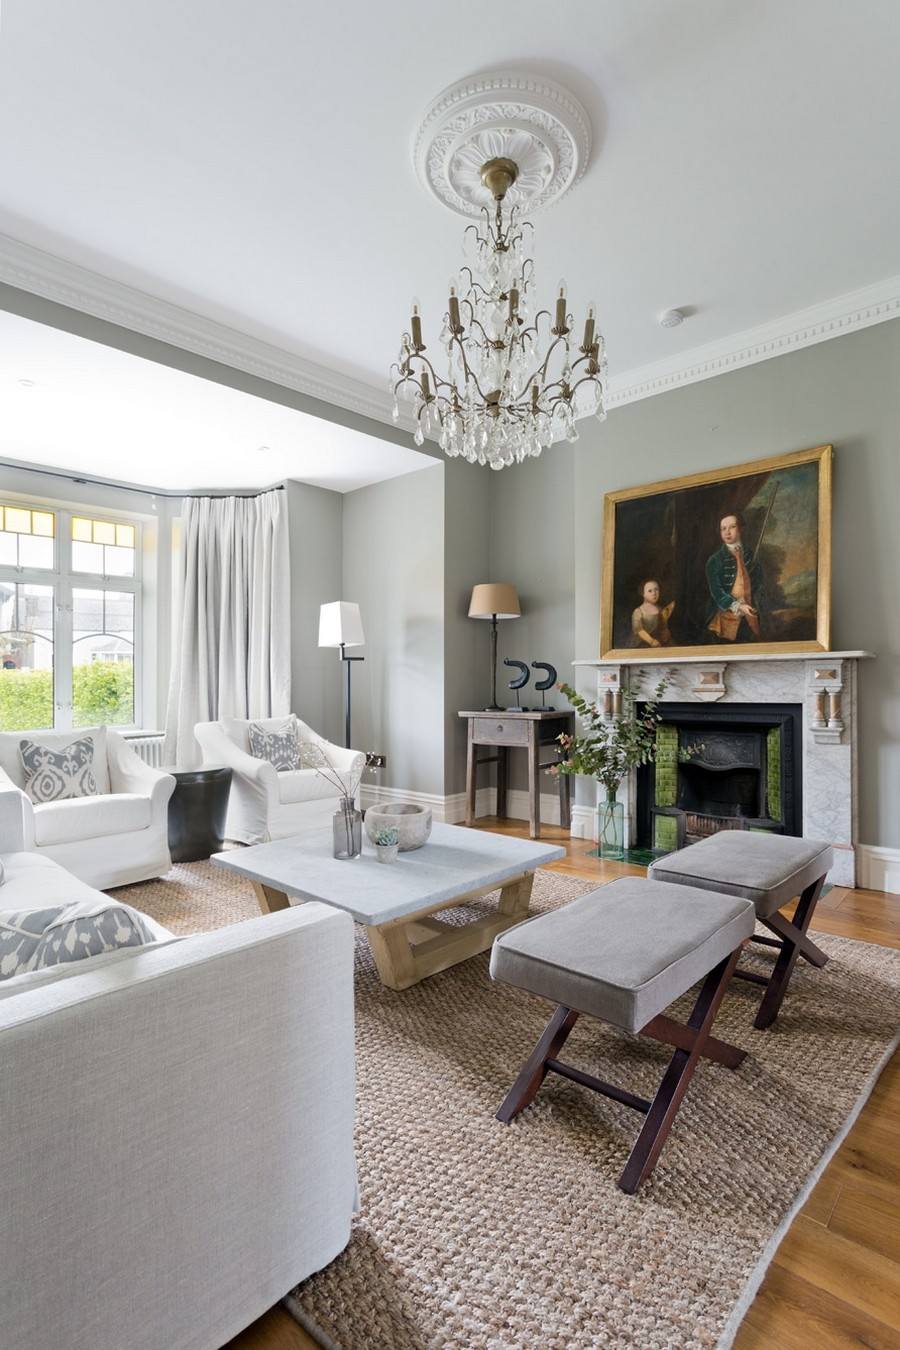 The Best Interior Design Projects In Dublin interior design projects in dublin The Best Interior Design Projects In Dublin rosalia terrace geri designs